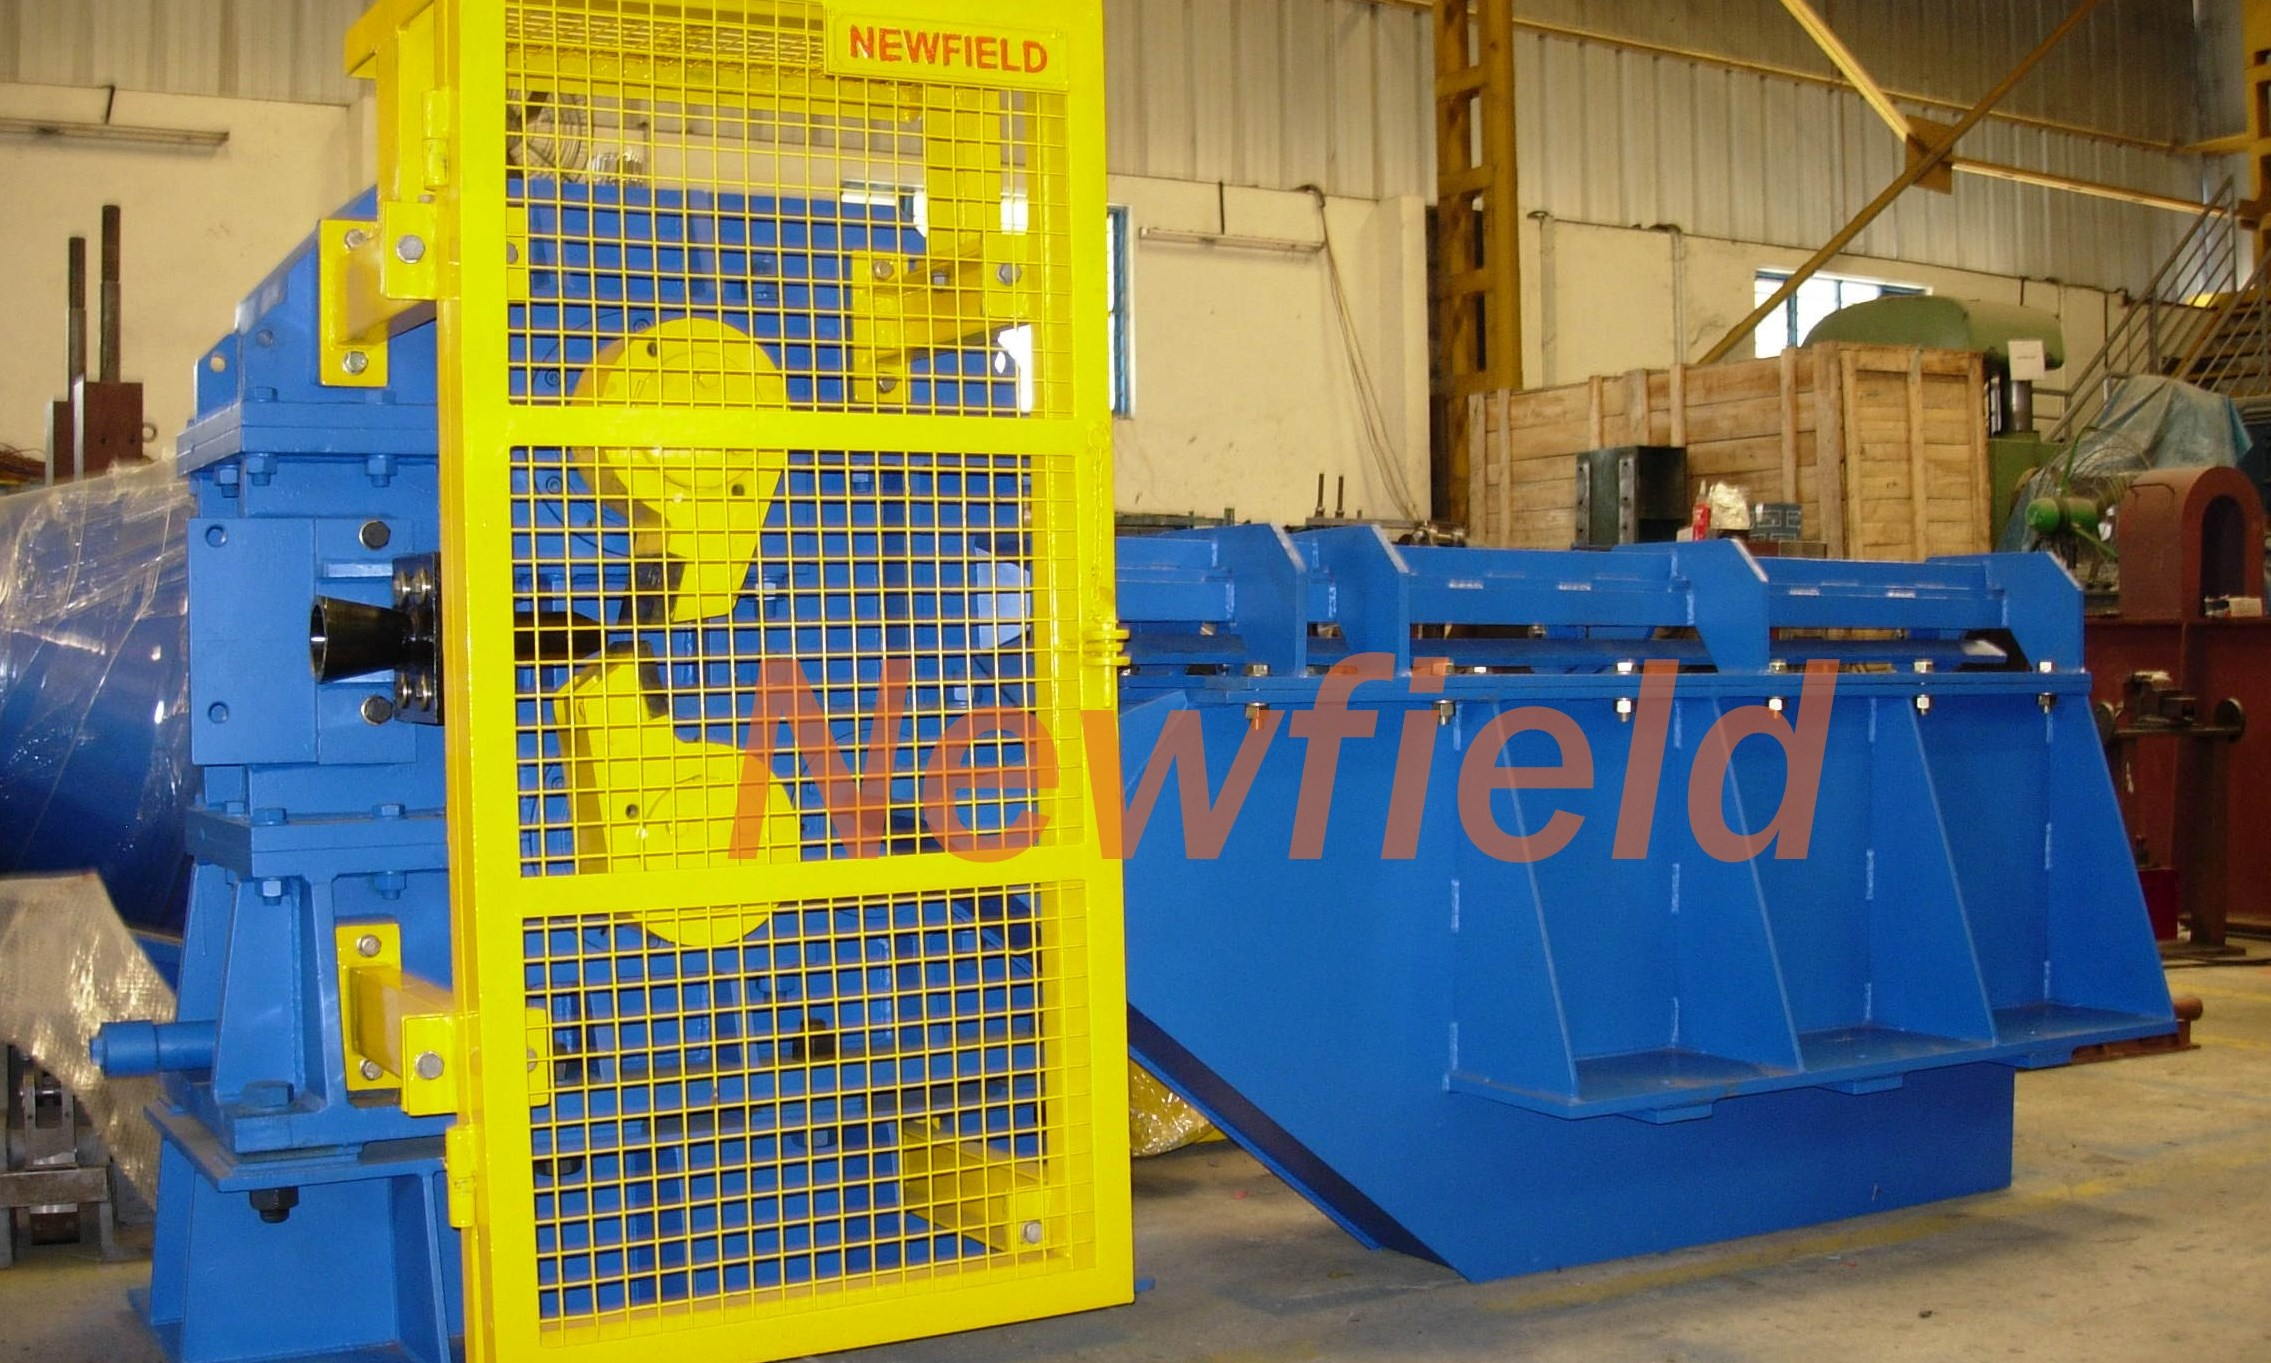 Newfield Rolling Mill Machines Circuit Design Bass Separator Crop And Cobble Shear